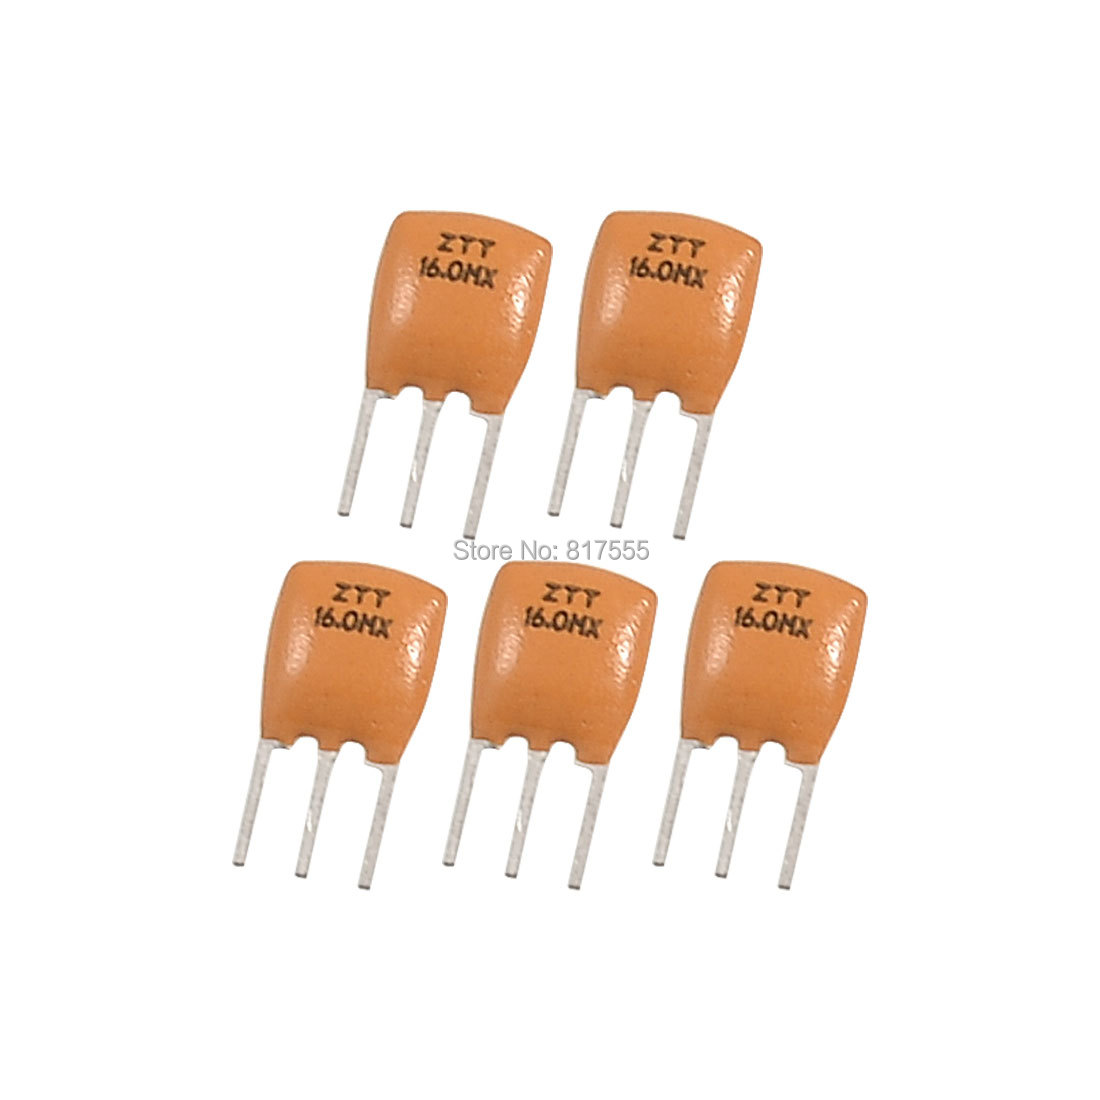 Uxcell a12092100ux0654 Radial Lead Ceramic Resonator 3 Pins ZTT Series, 16.000 MHz, 5 Piece.